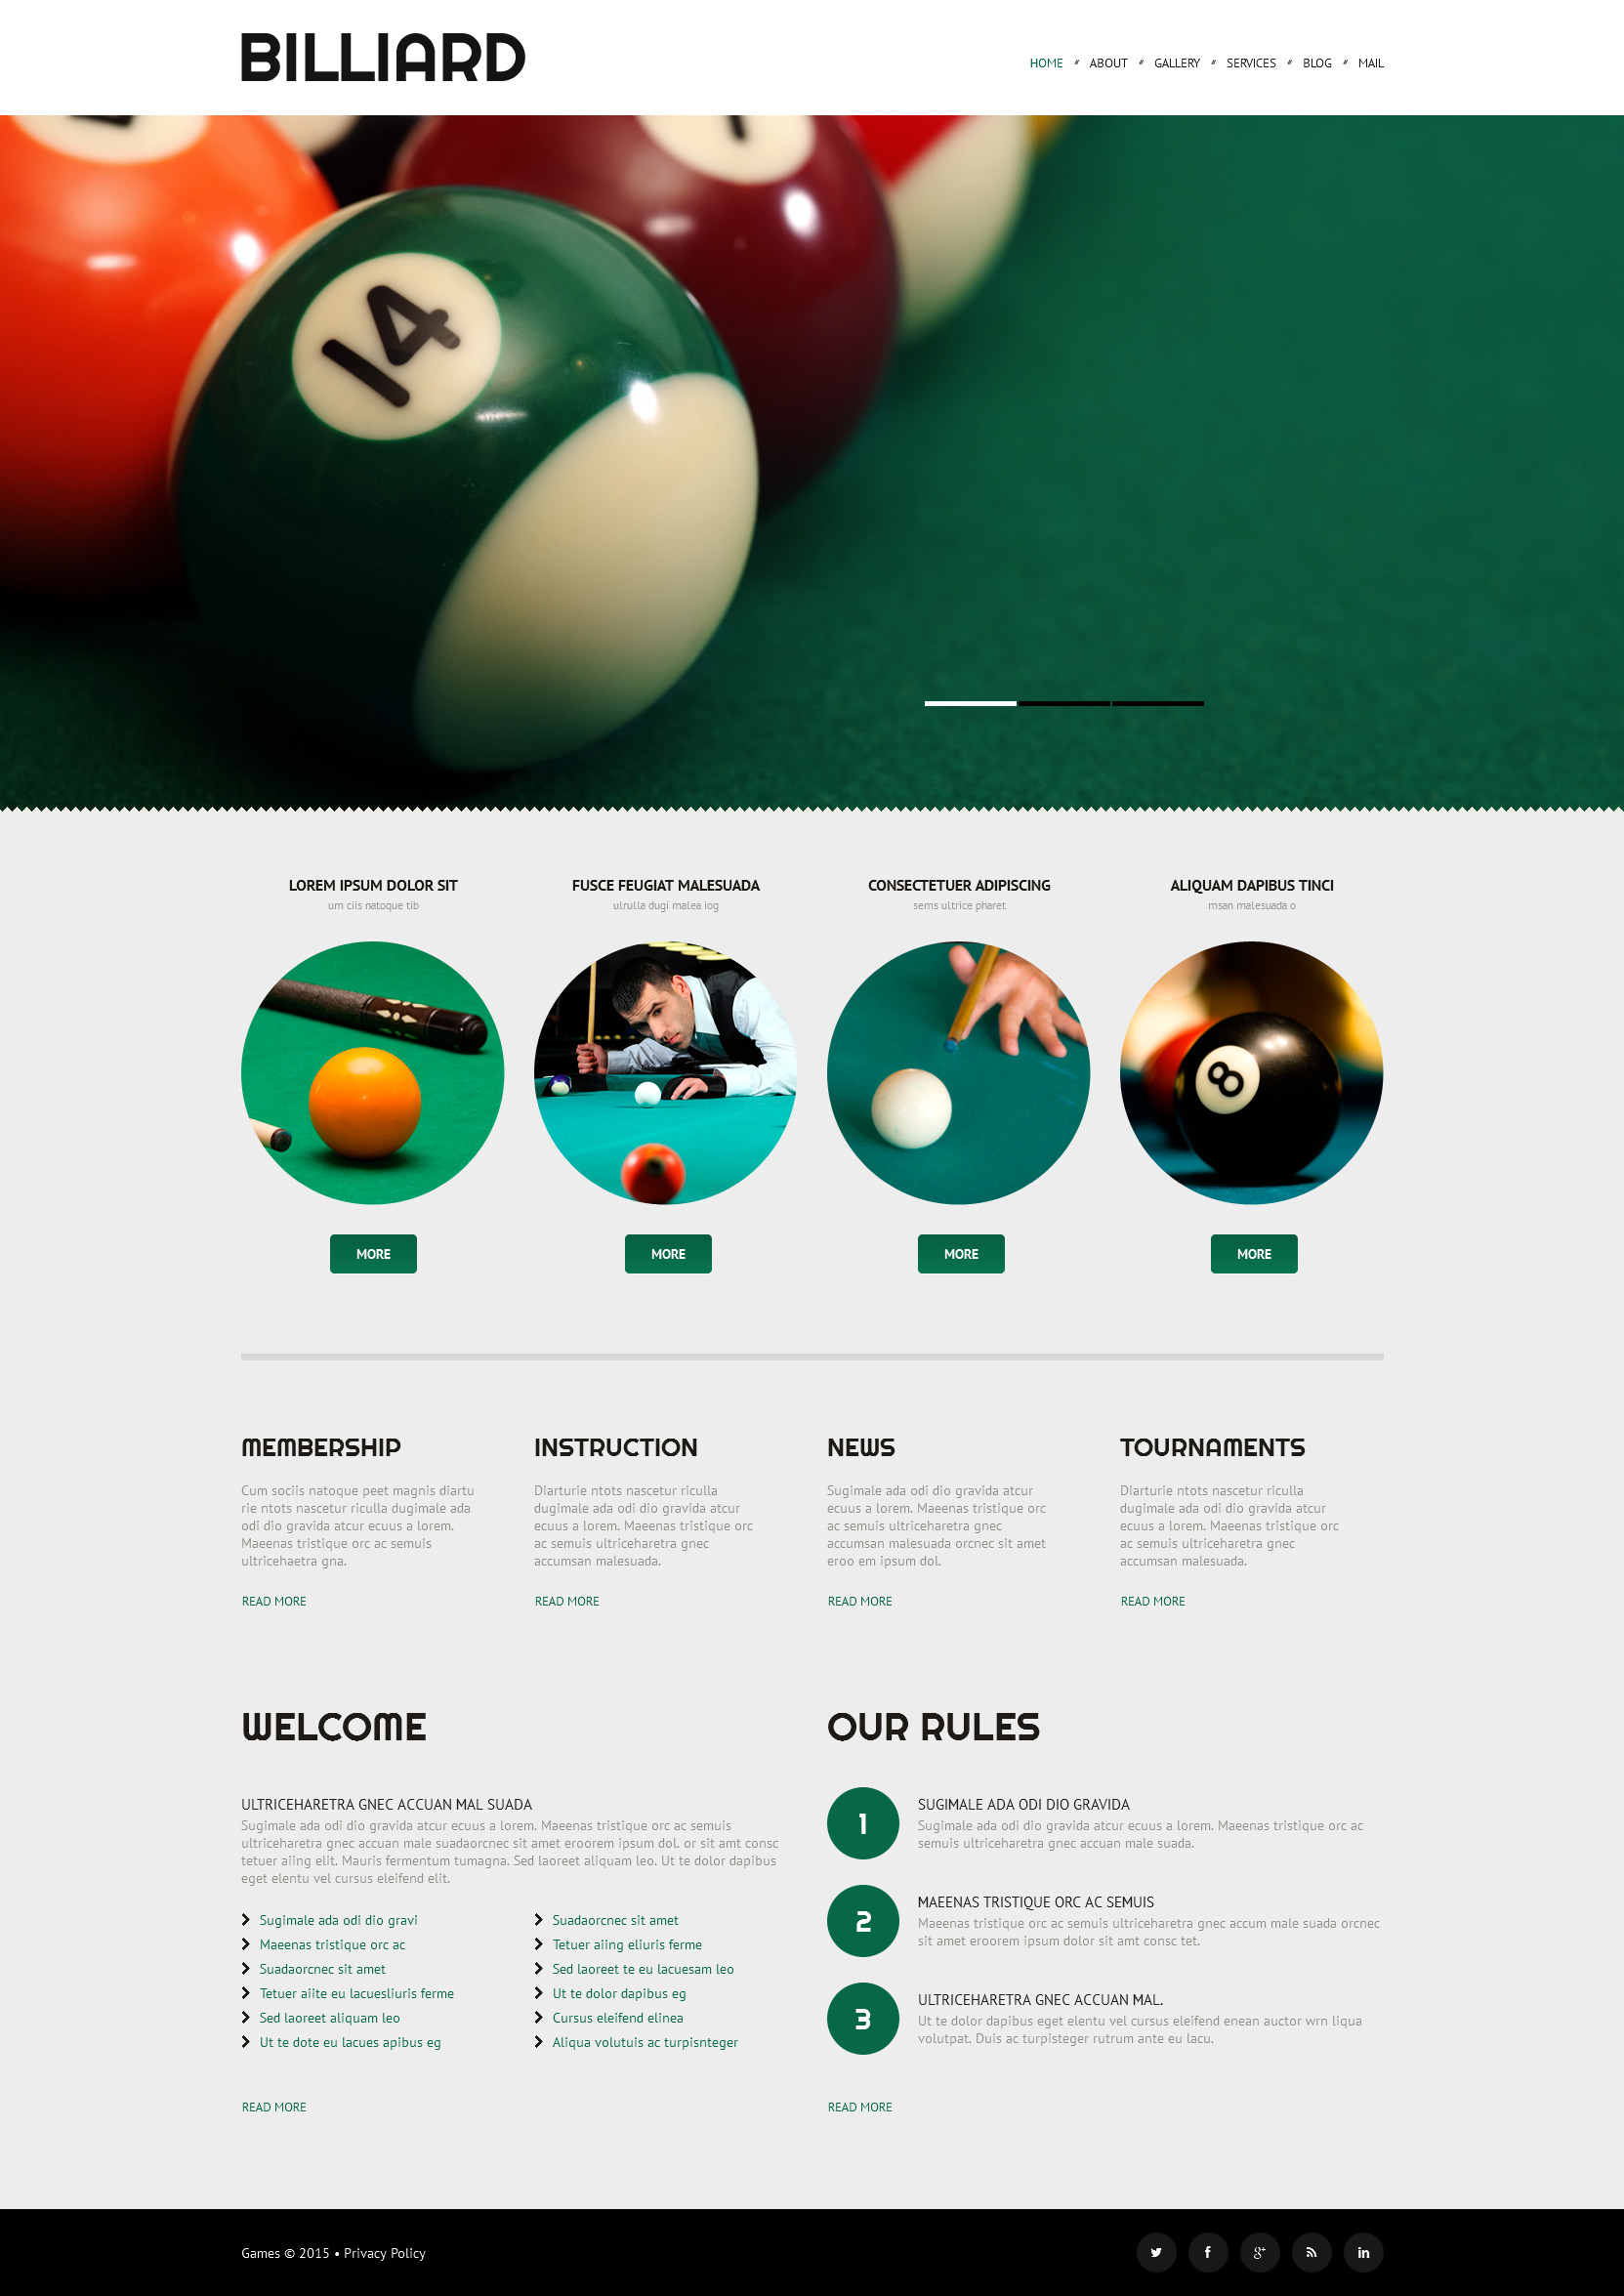 The Billiard Club WordPress Design 52999, one of the best WordPress themes of its kind (sport, most popular), also known as billiard club WordPress template, sport WordPress template, entertainment WordPress template, site WordPress template, cup-final WordPress template, champions WordPress template, membership WordPress template, leadership WordPress template, team WordPress template, ball WordPress template, cue WordPress template, pocket WordPress template, positions WordPress template, cloth WordPress template, lamps WordPress template, table WordPress template, pool WordPress template, tables WordPress template, accessories WordPress template, furniture WordPress template, books WordPress template, videos WordPress template, coaching WordPress template, teacher WordPress template, principles and related with billiard club, sport, entertainment, site, cup-final, champions, membership, leadership, team, ball, cue, pocket, positions, cloth, lamps, table, pool, tables, accessories, furniture, books, videos, coaching, teacher, principles, etc.